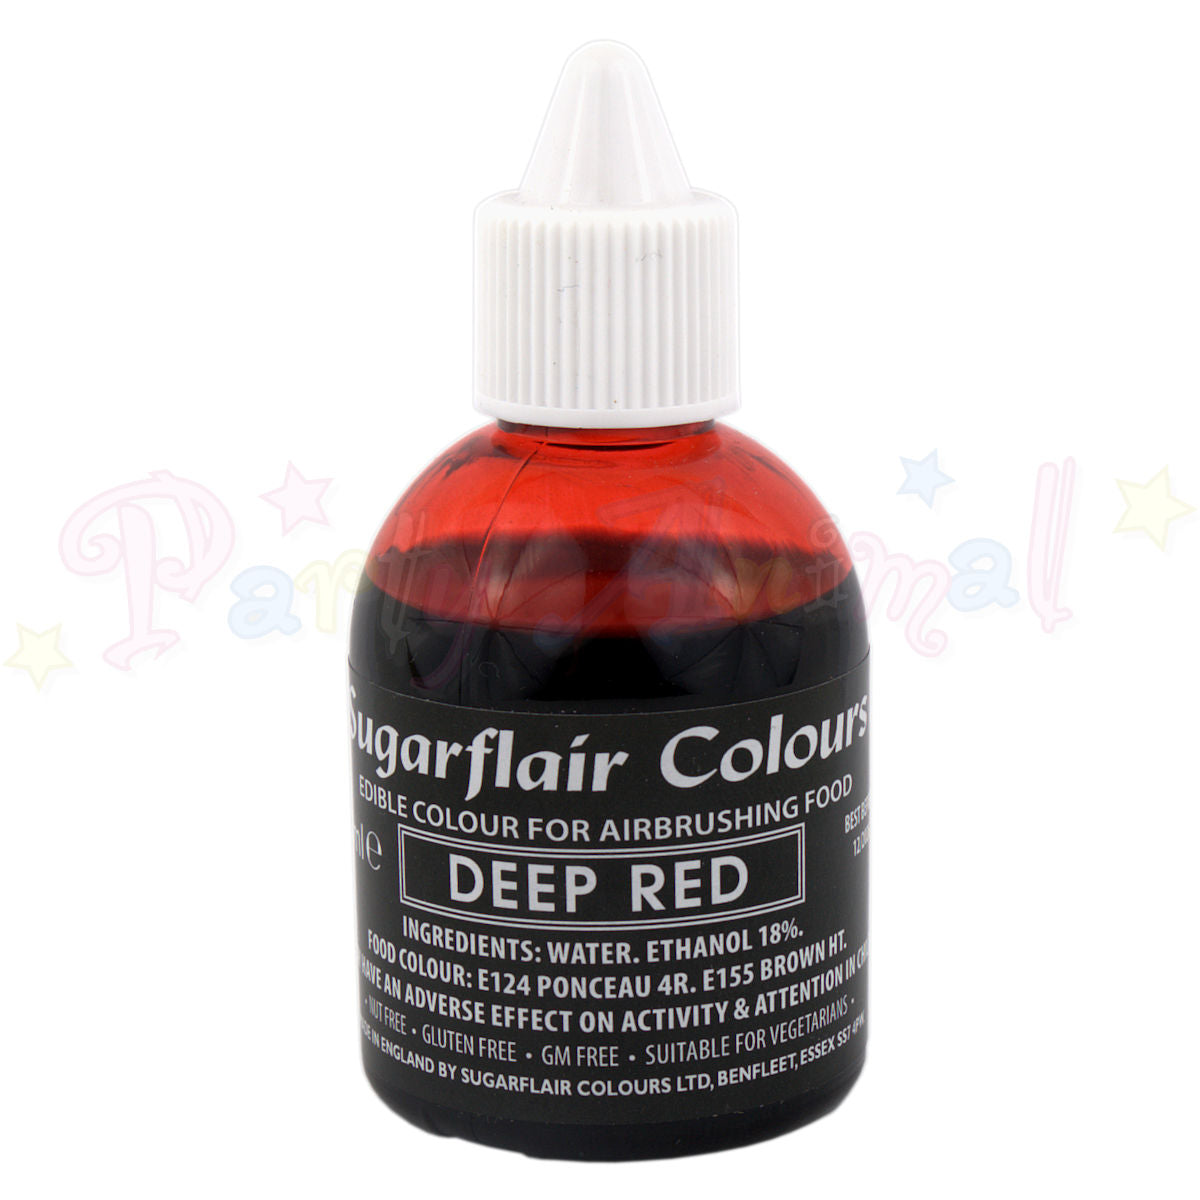 Sugarflair Airbrush Colours for Cake Decoration - Deep Red